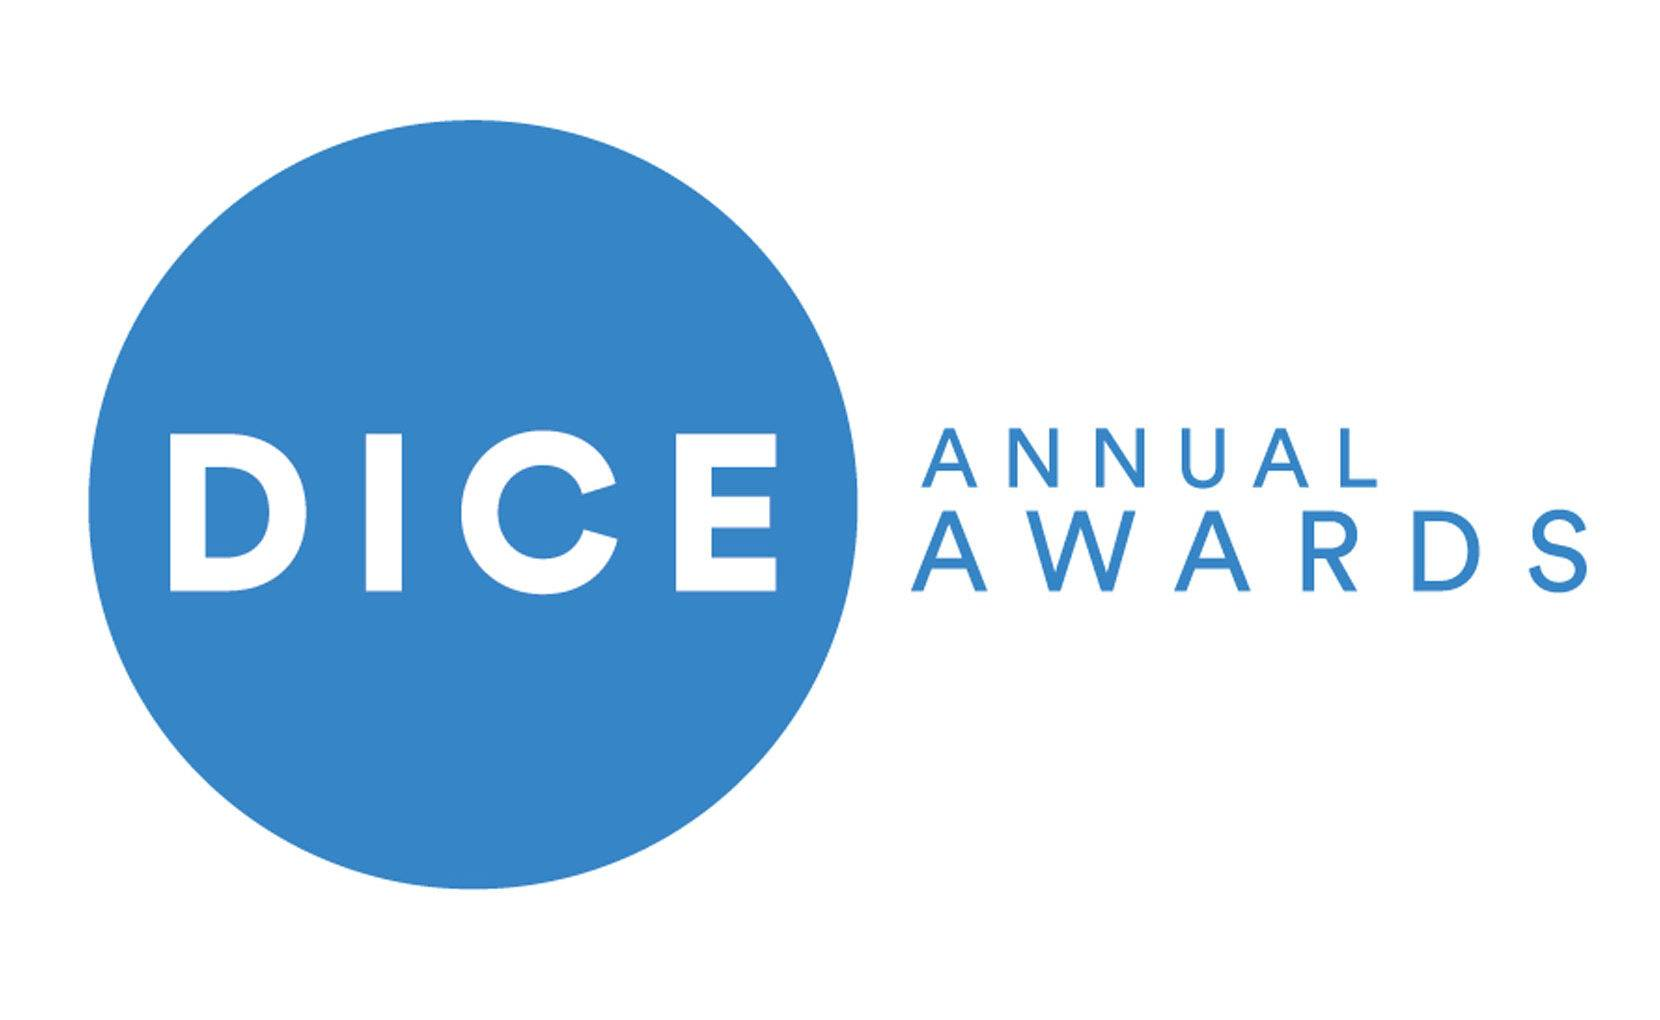 DICE Awards 2018: Die Nominierten